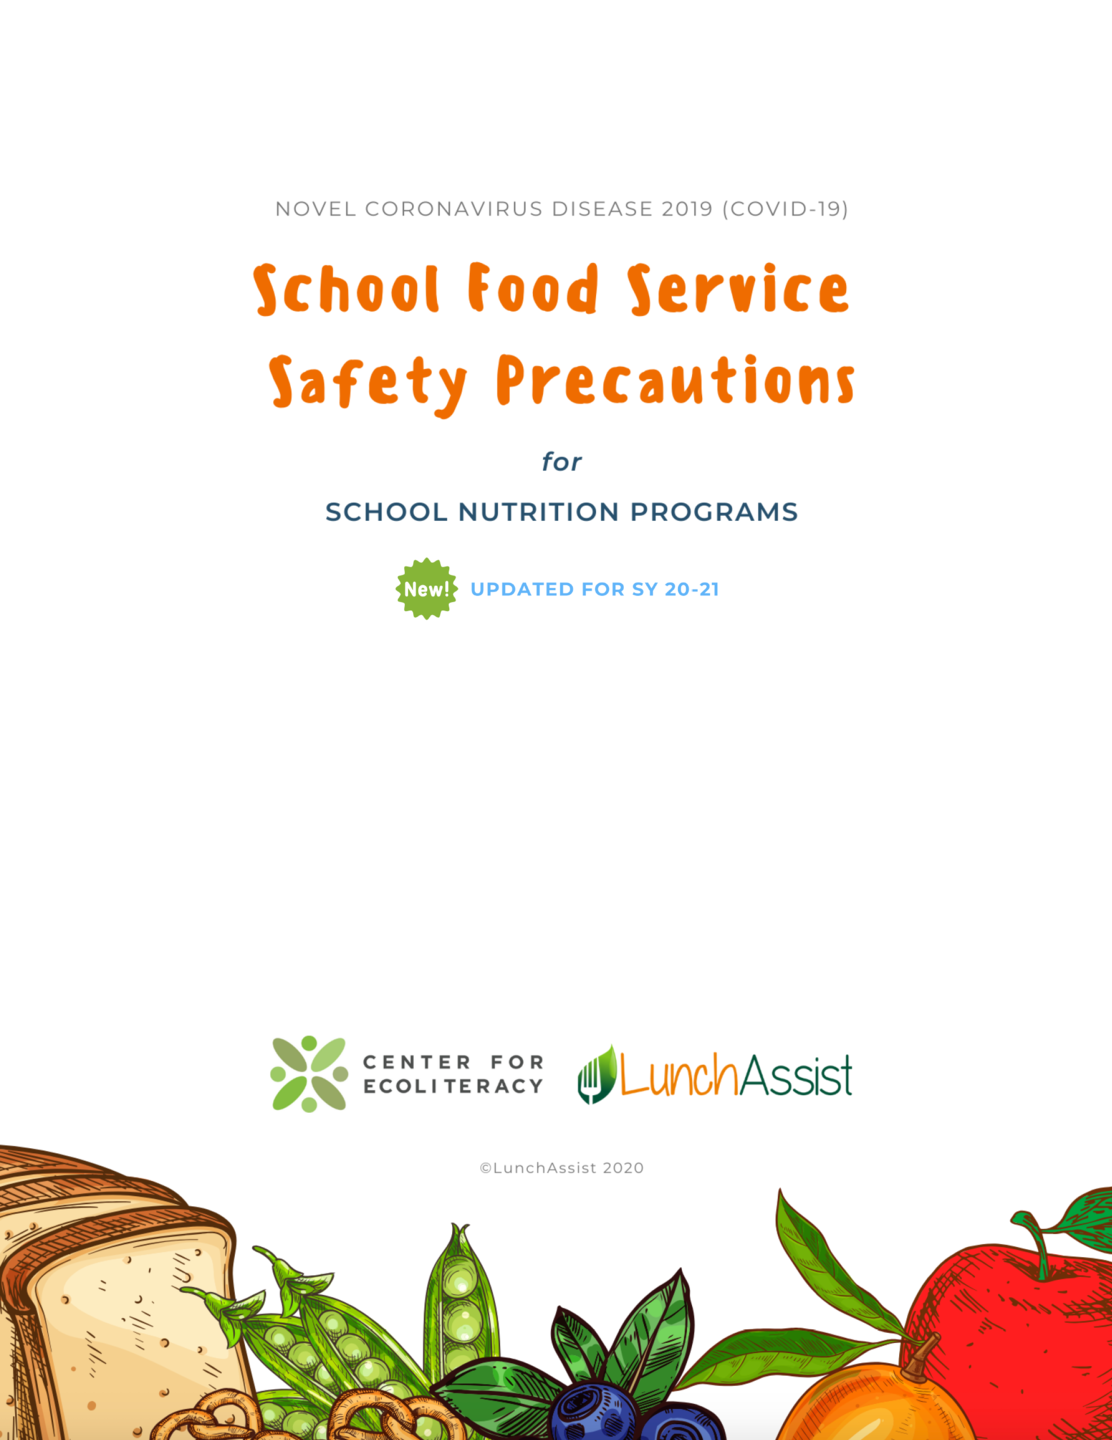 School Food Service Safety Precautions